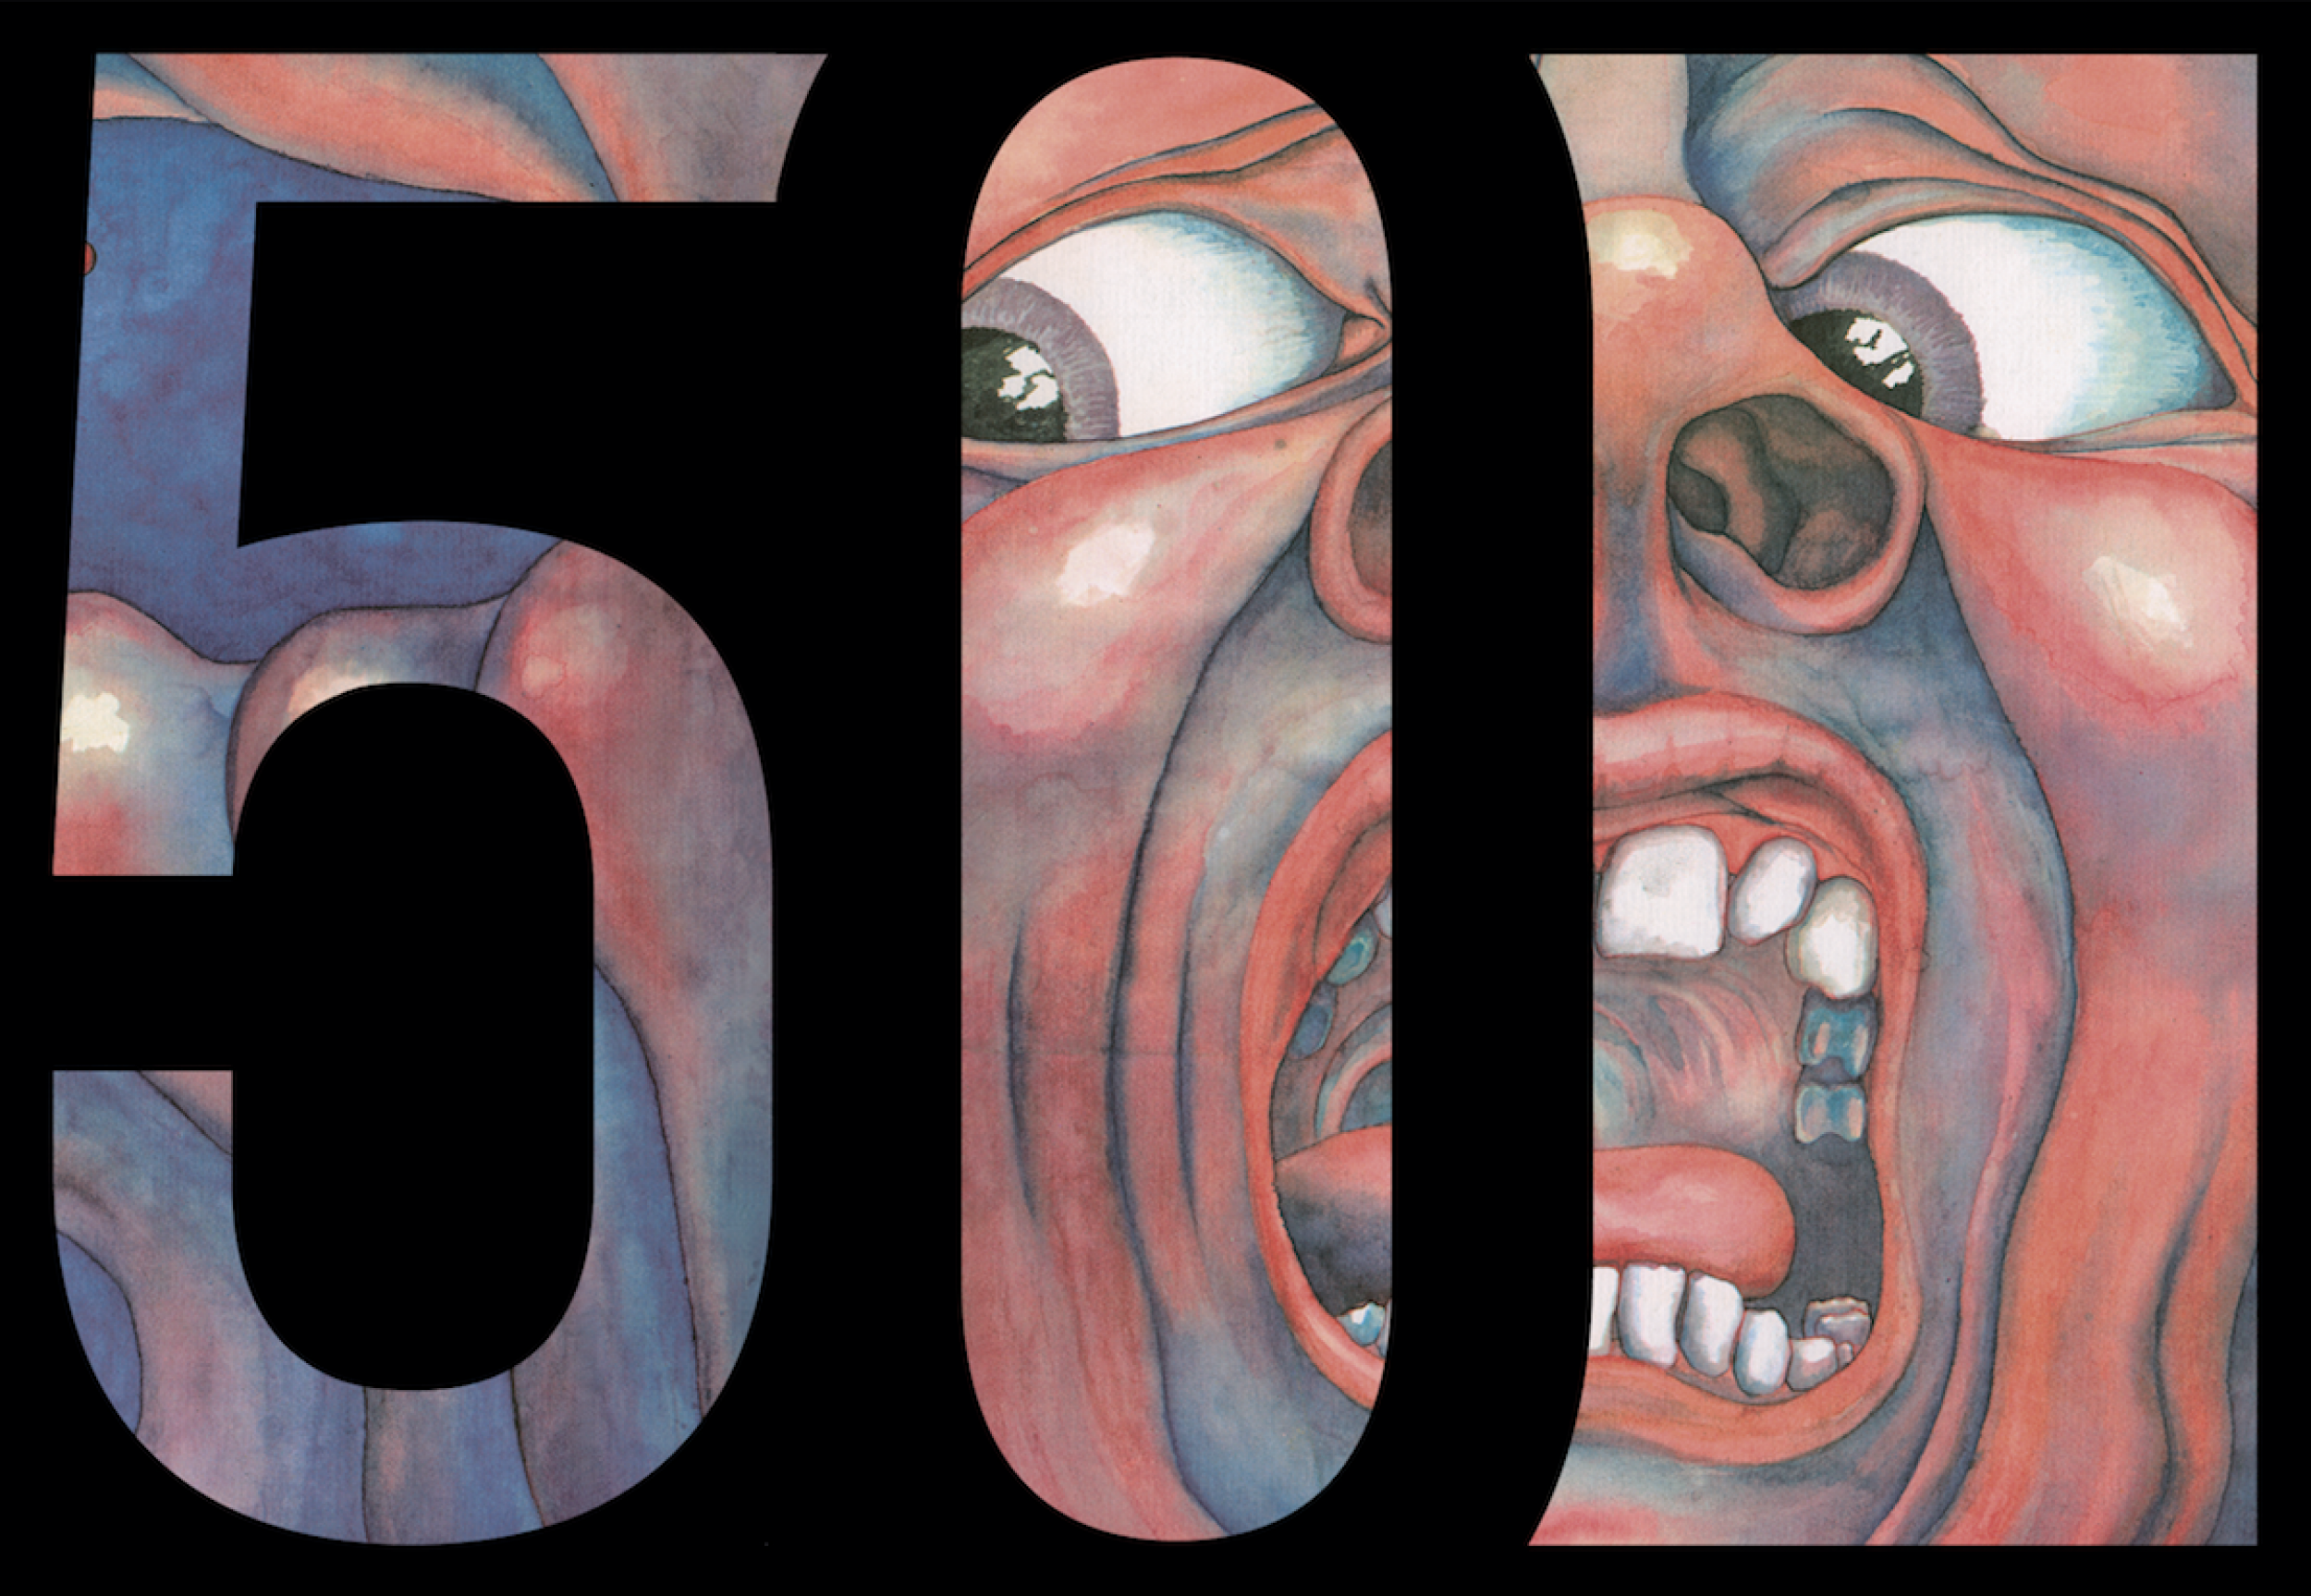 King Crimson Sets Plans for 50th Anniversary Releases